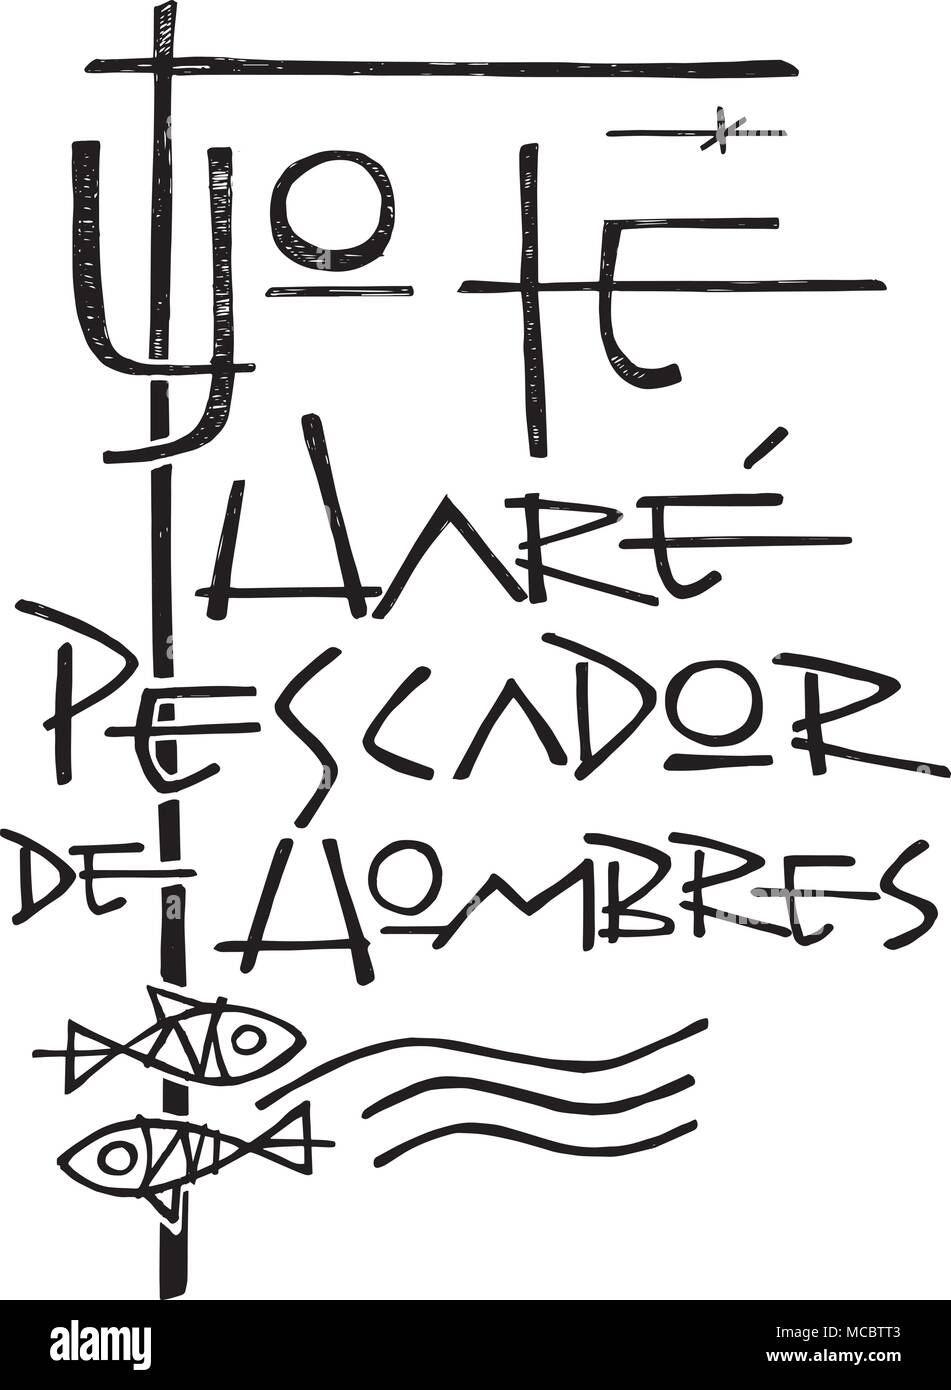 Hand drawn vector illustration or drawing of a phrase in spanish that means: I will make you fisher of people - Stock Image